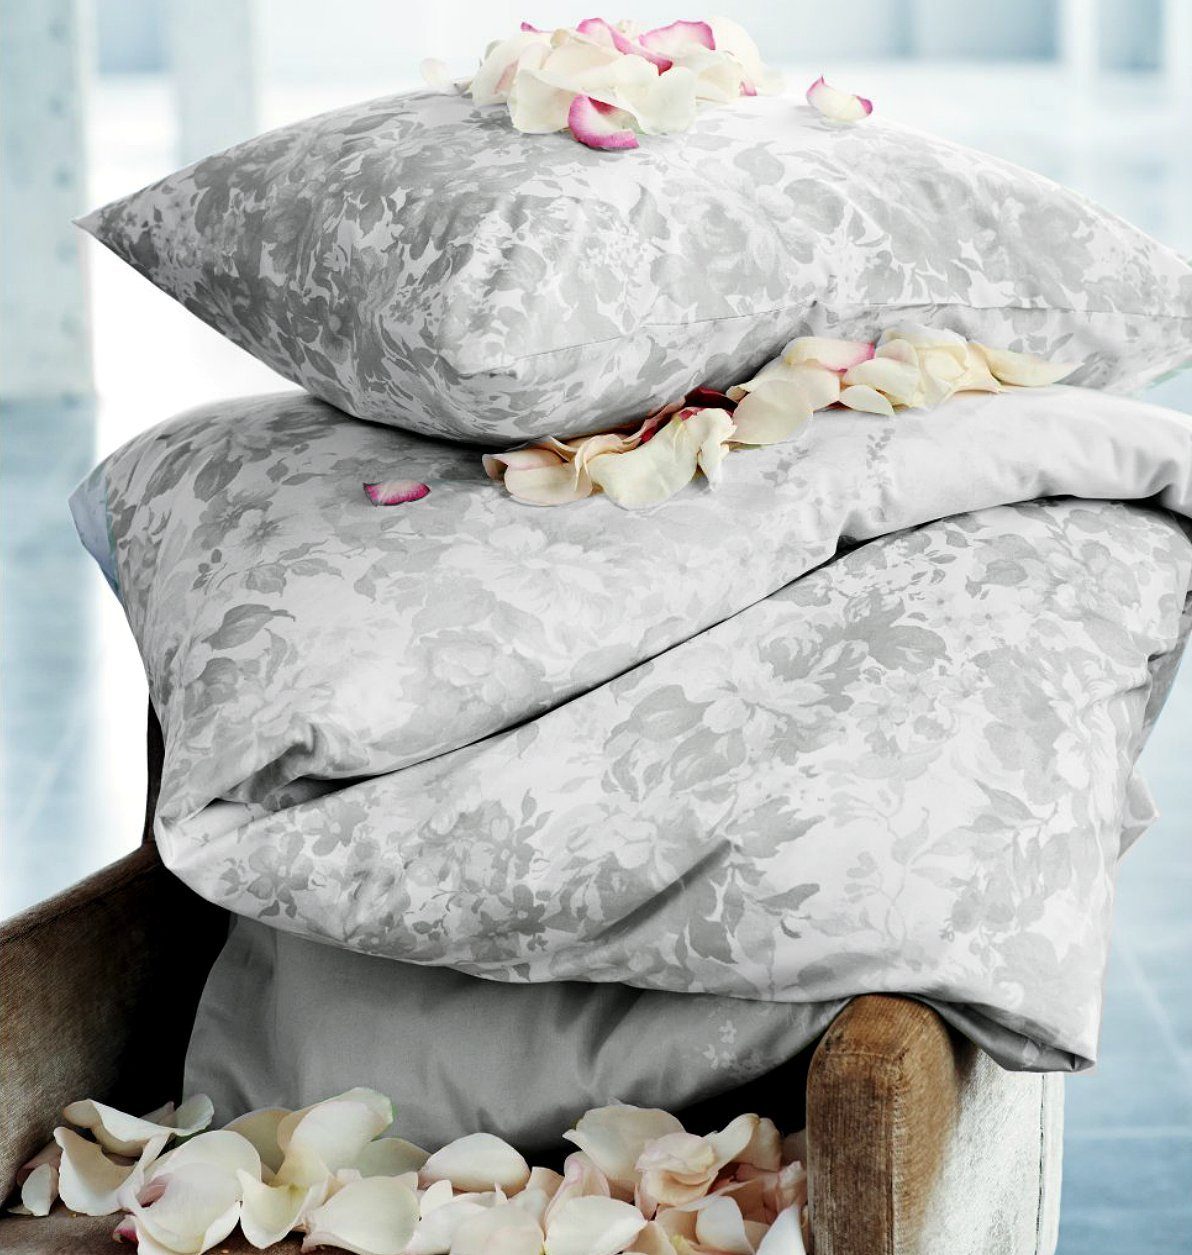 French Country Floral Border Duvet Quilt Cover 2pc Set Twin 100% Cotton Grey Gray White Leaves Silhouette Floral Garden Branches (Twin/Grey)